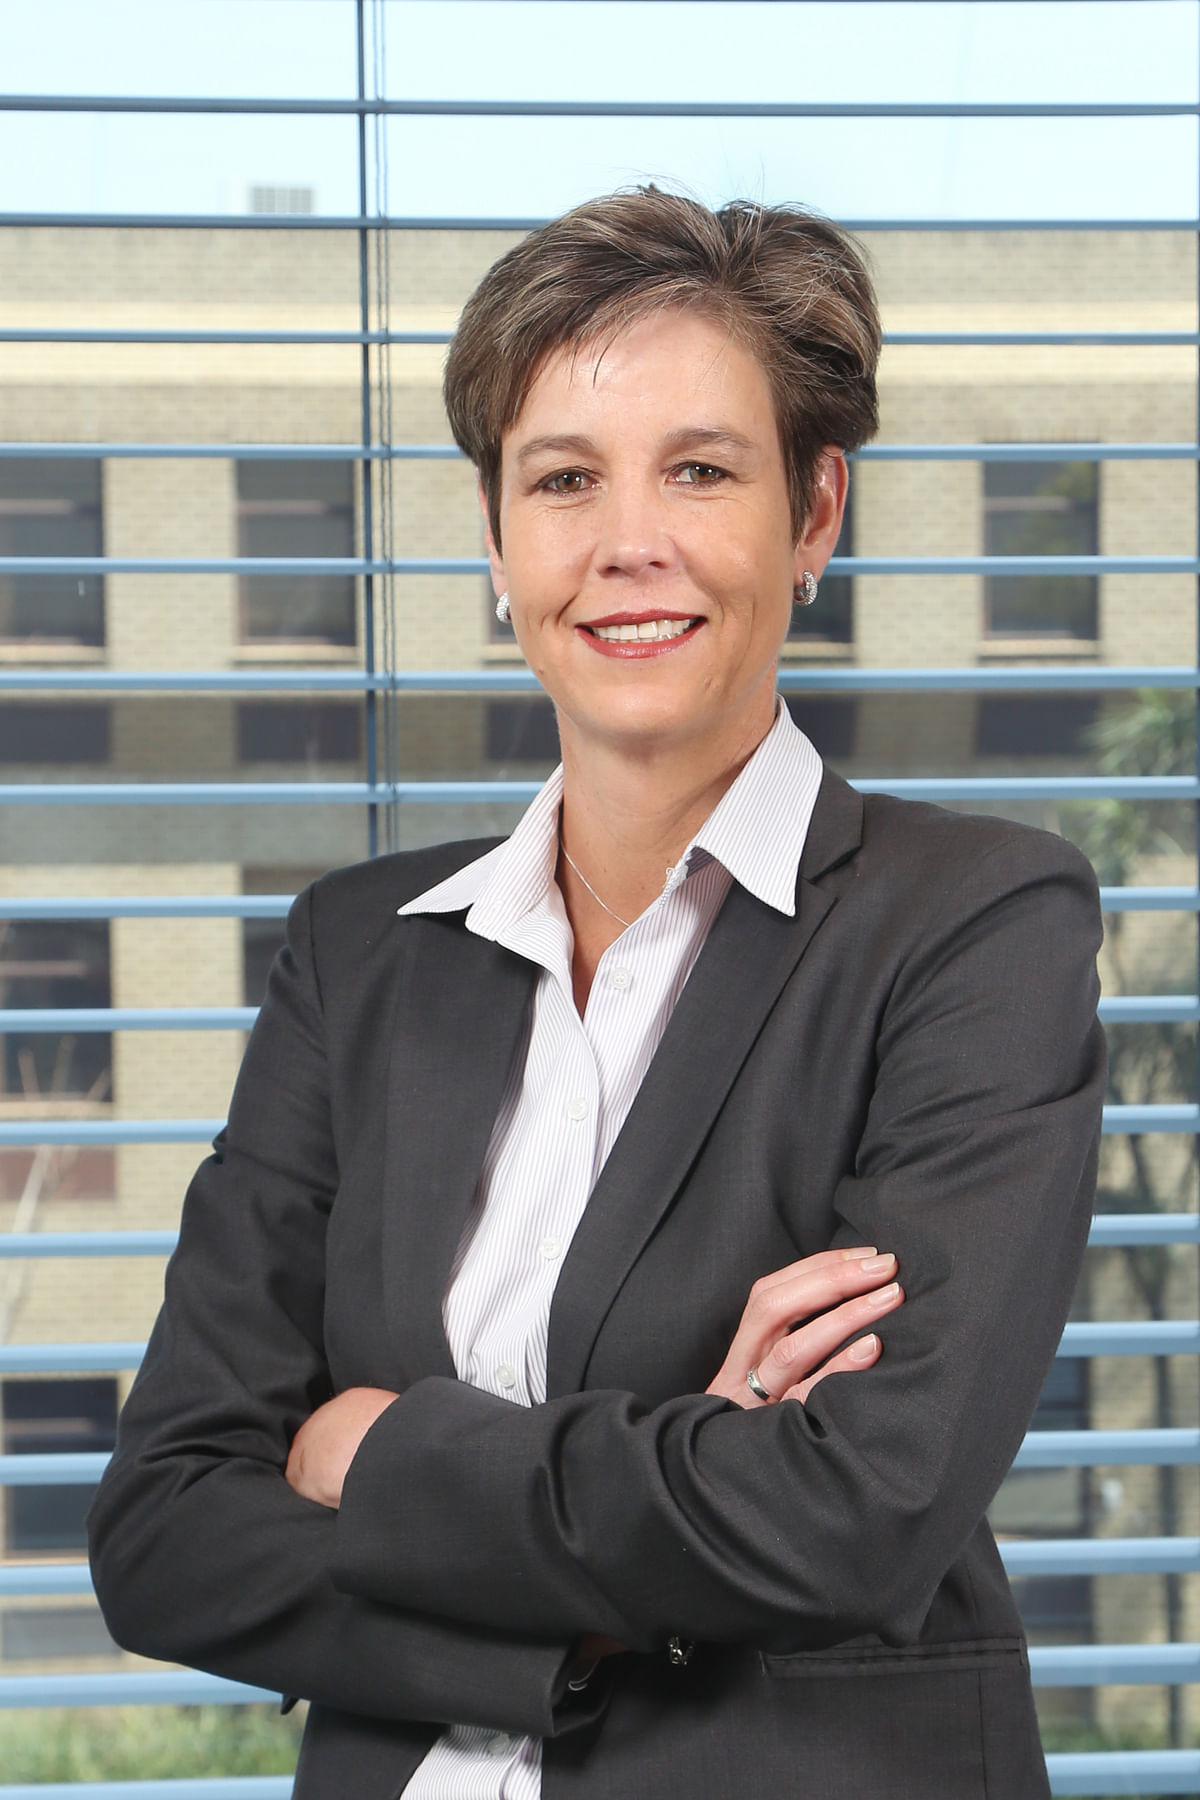 Standard Bank Head of Power, Ms. Rentia van Tonder